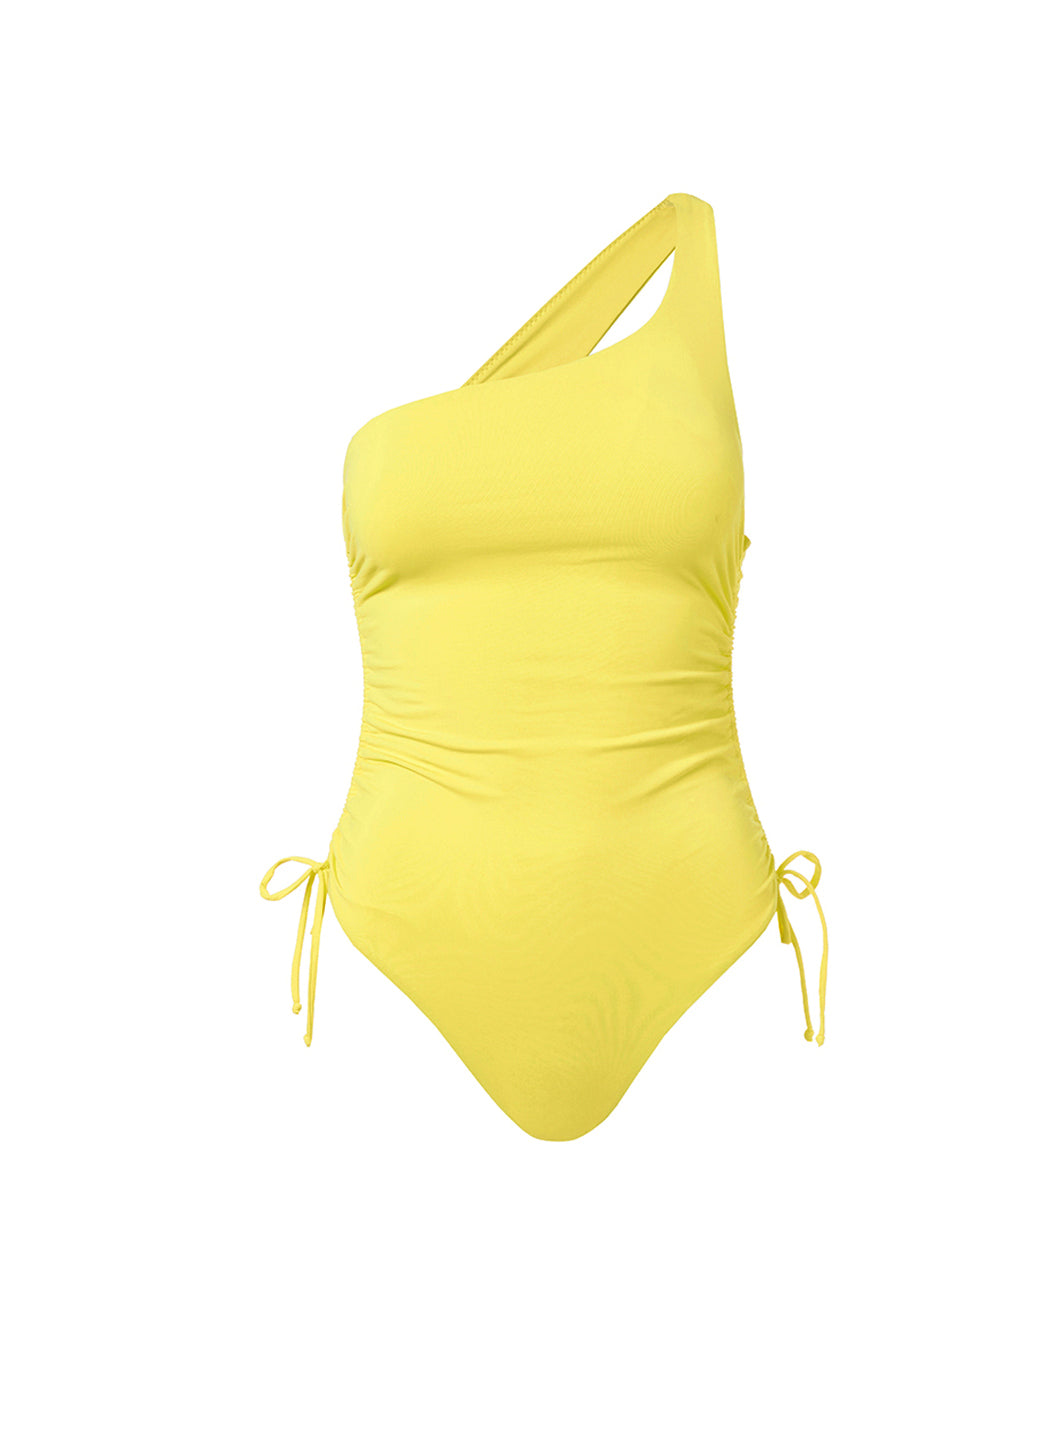 Polynesia Yellow One Shoulder Ruched Swimsuit - Melissa Odabash One Piece